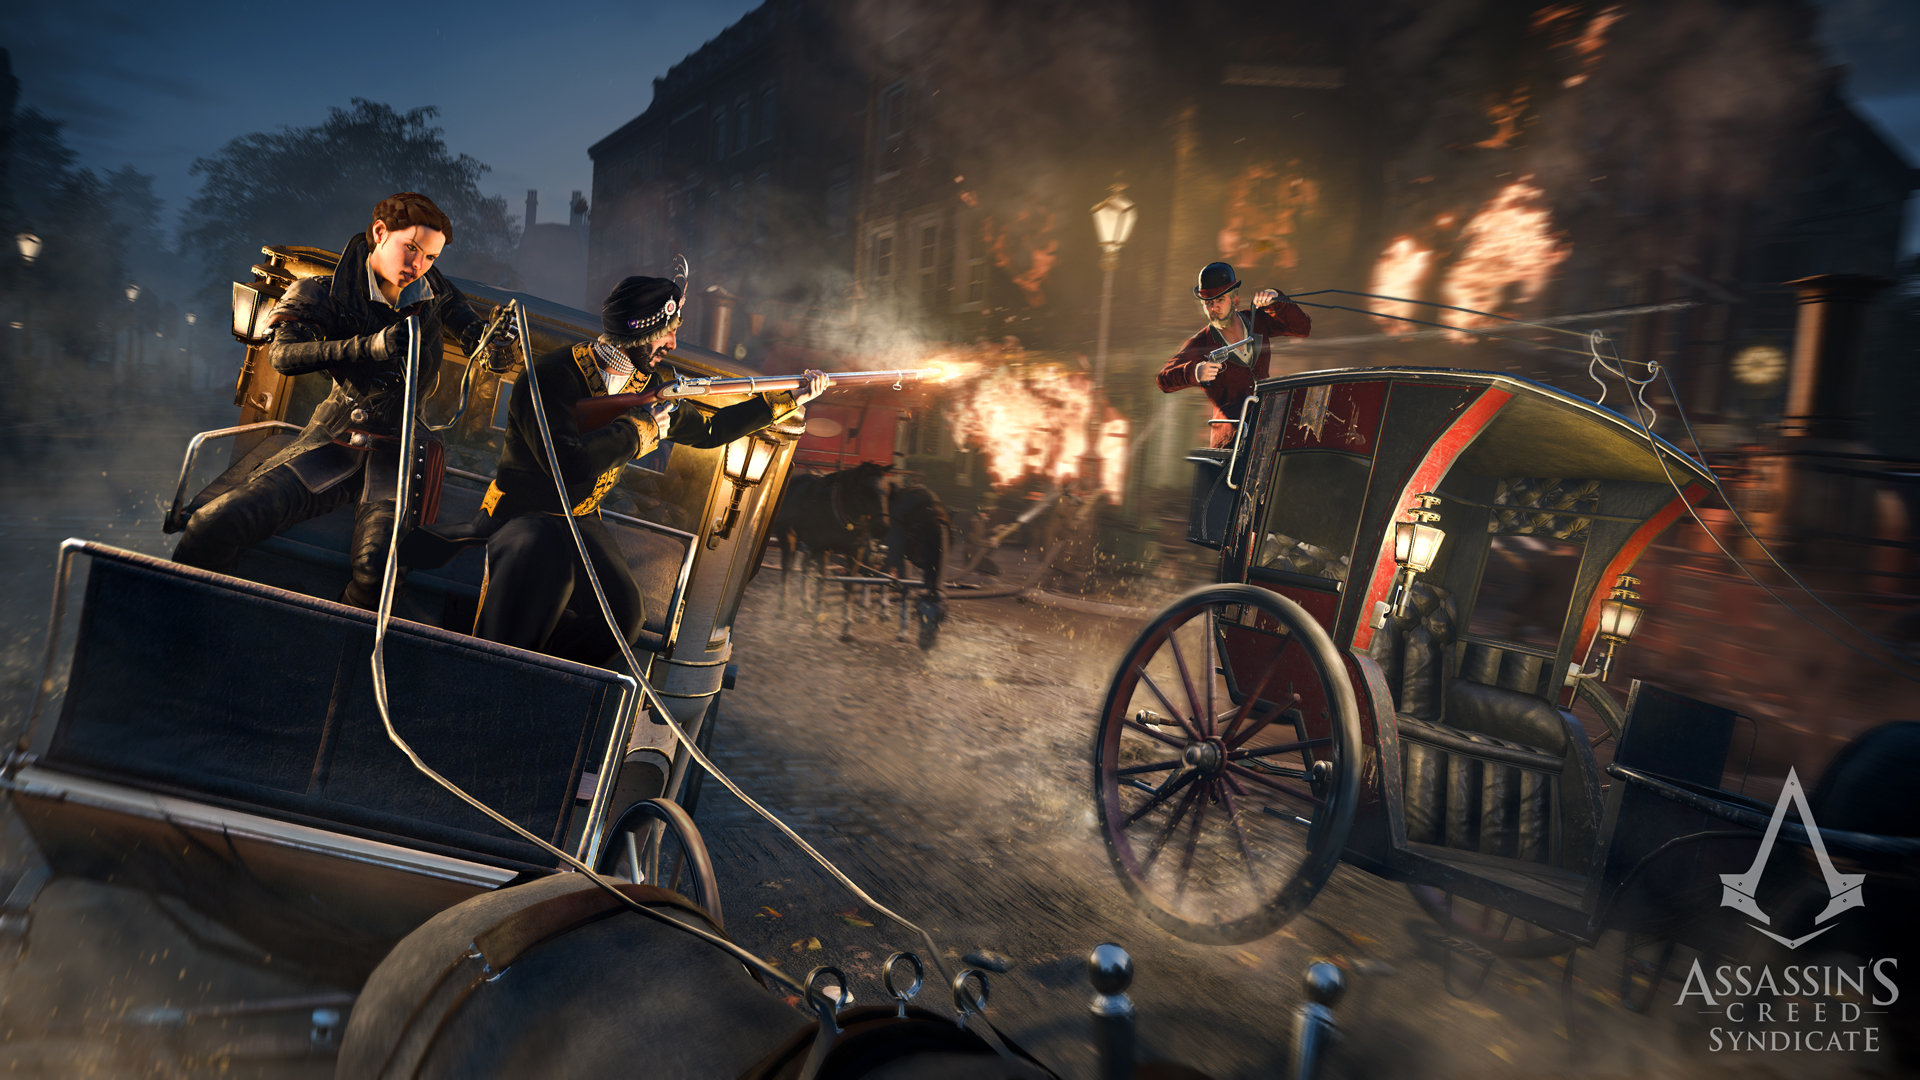 1920x1080 Pubg Wallpaper Assassin S Creed Syndicate Dlc The Last Maharaja Is Out